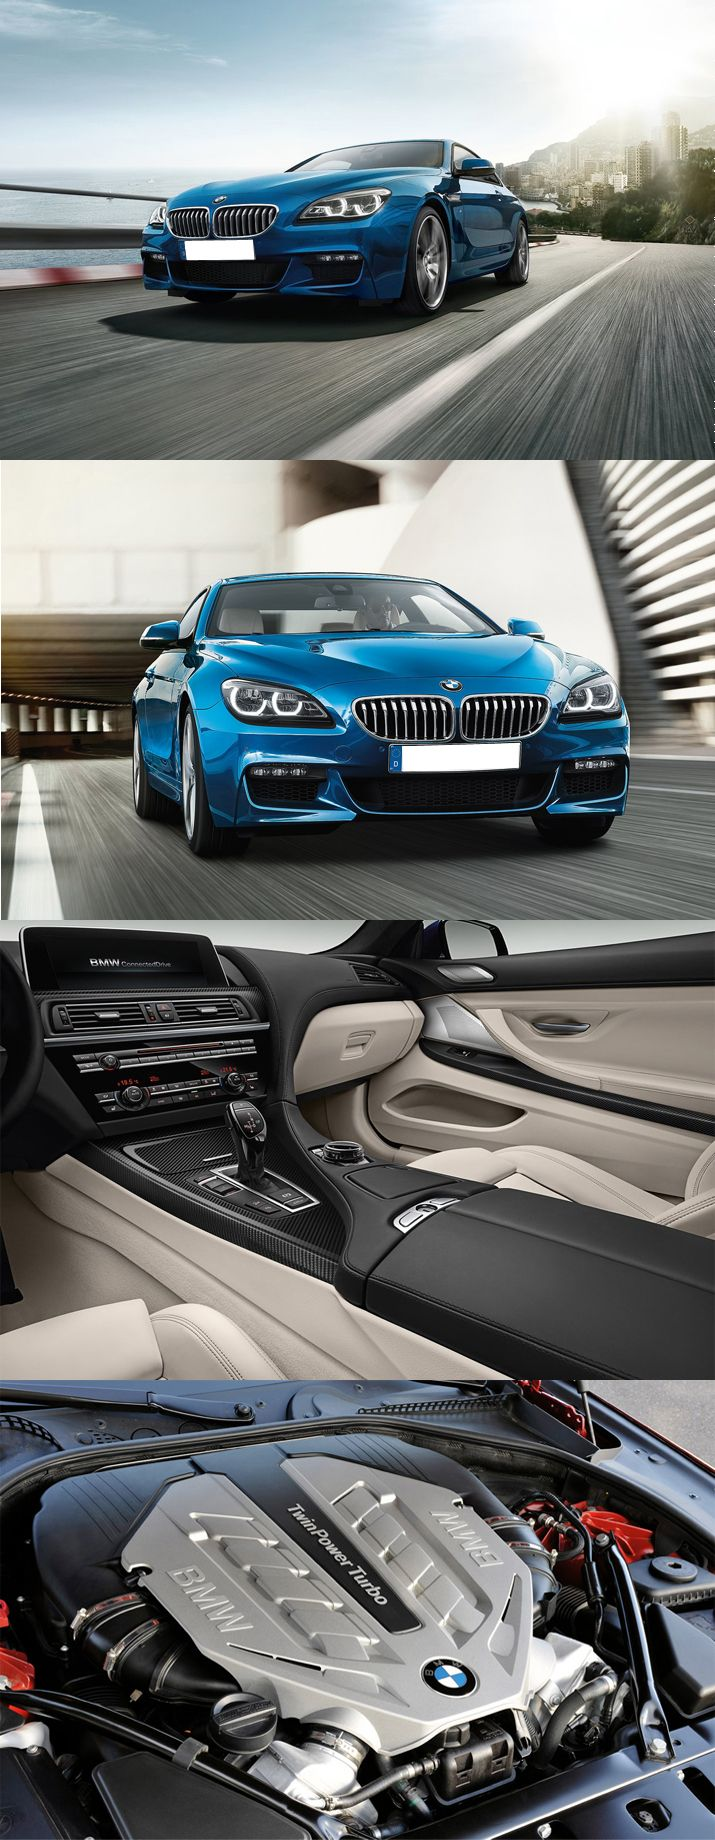 BMW 6 Series is leading from the front among other BMW Series #BMW #6Series http://www.enginefitted.co.uk/blog/bmw-6-series-leading-front-among-bmw-series/